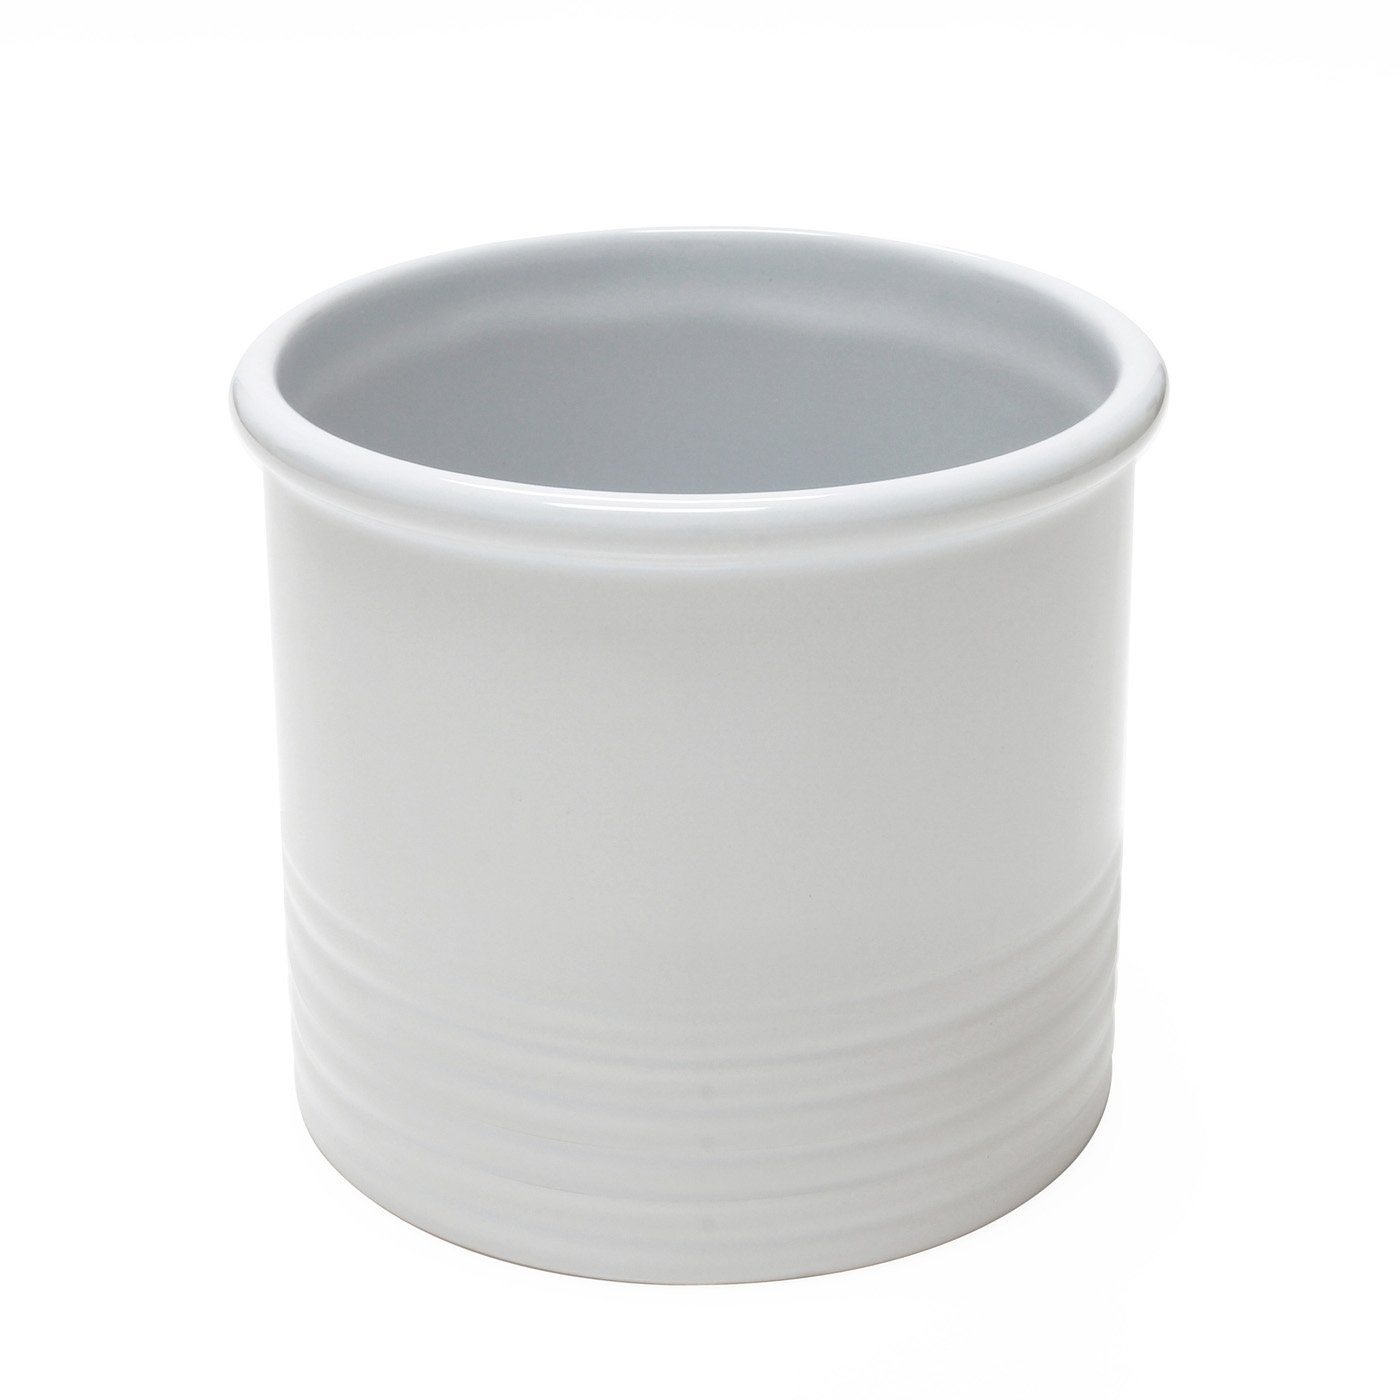 Large Utensil Crock - White